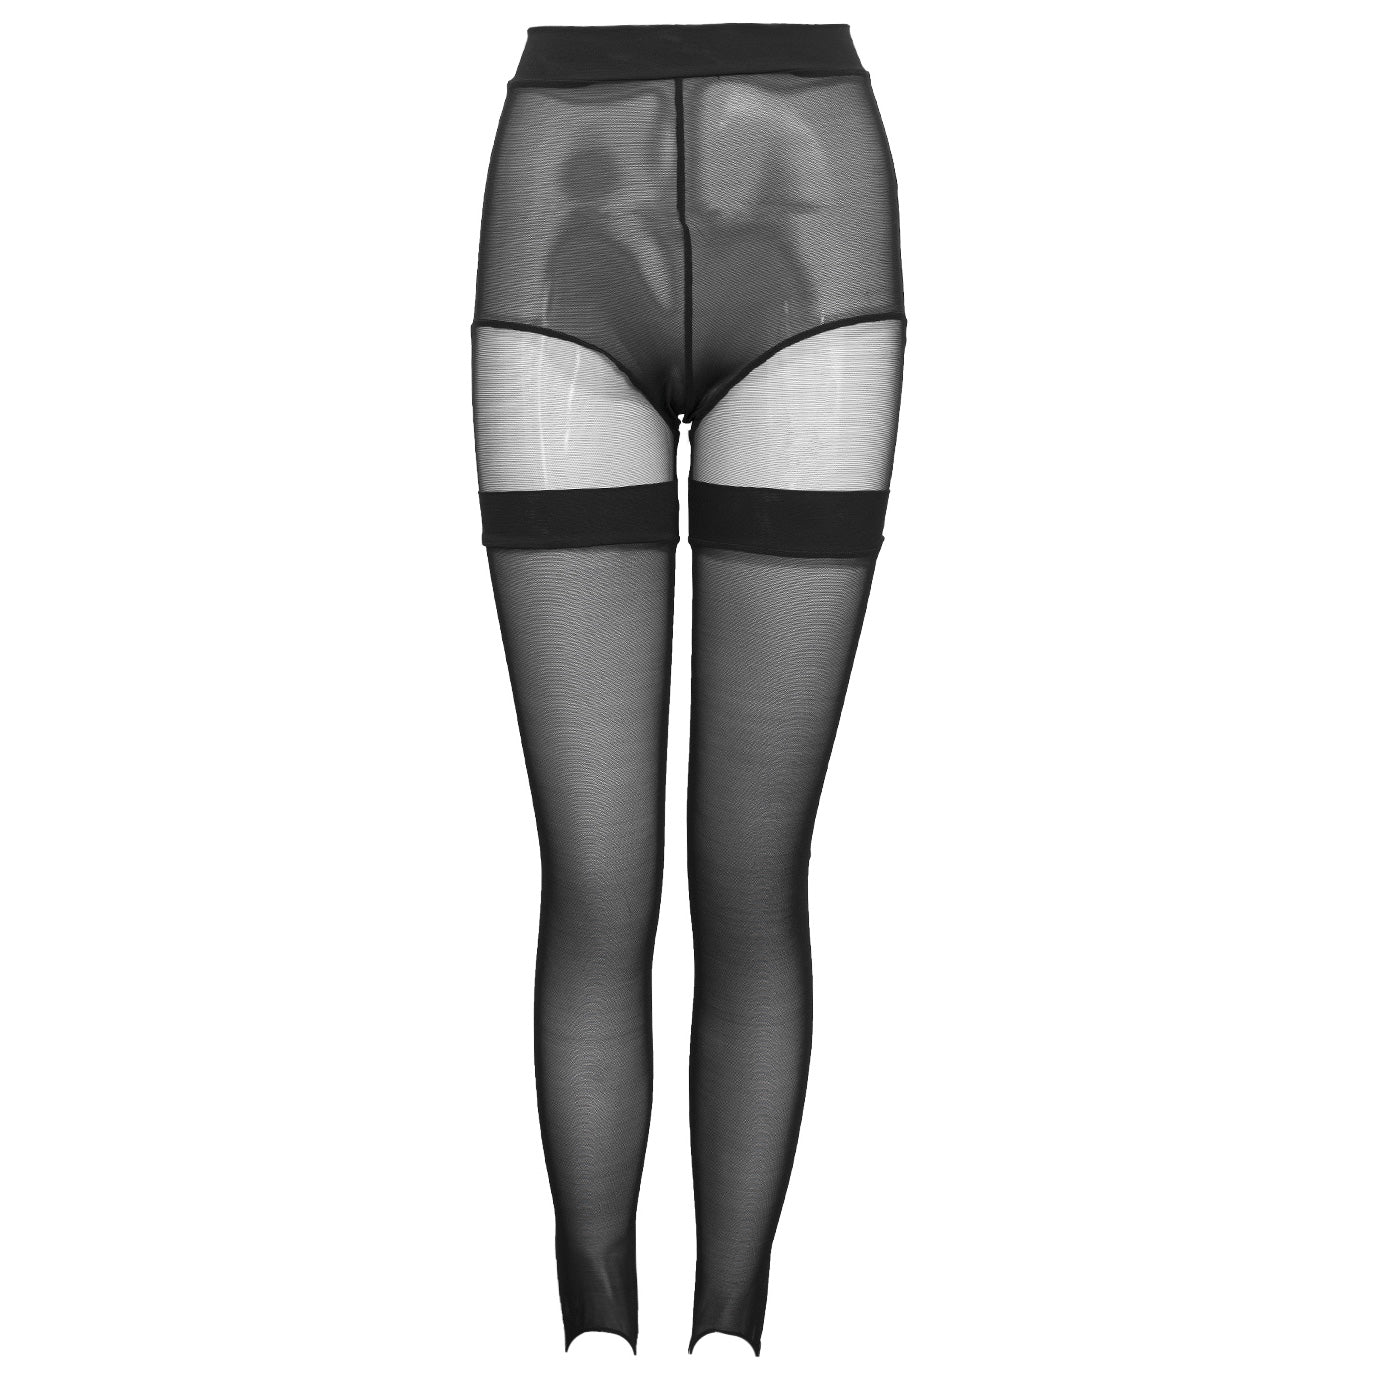 MURMUR stirrup leggings black sheer hold up tights with panelled mesh